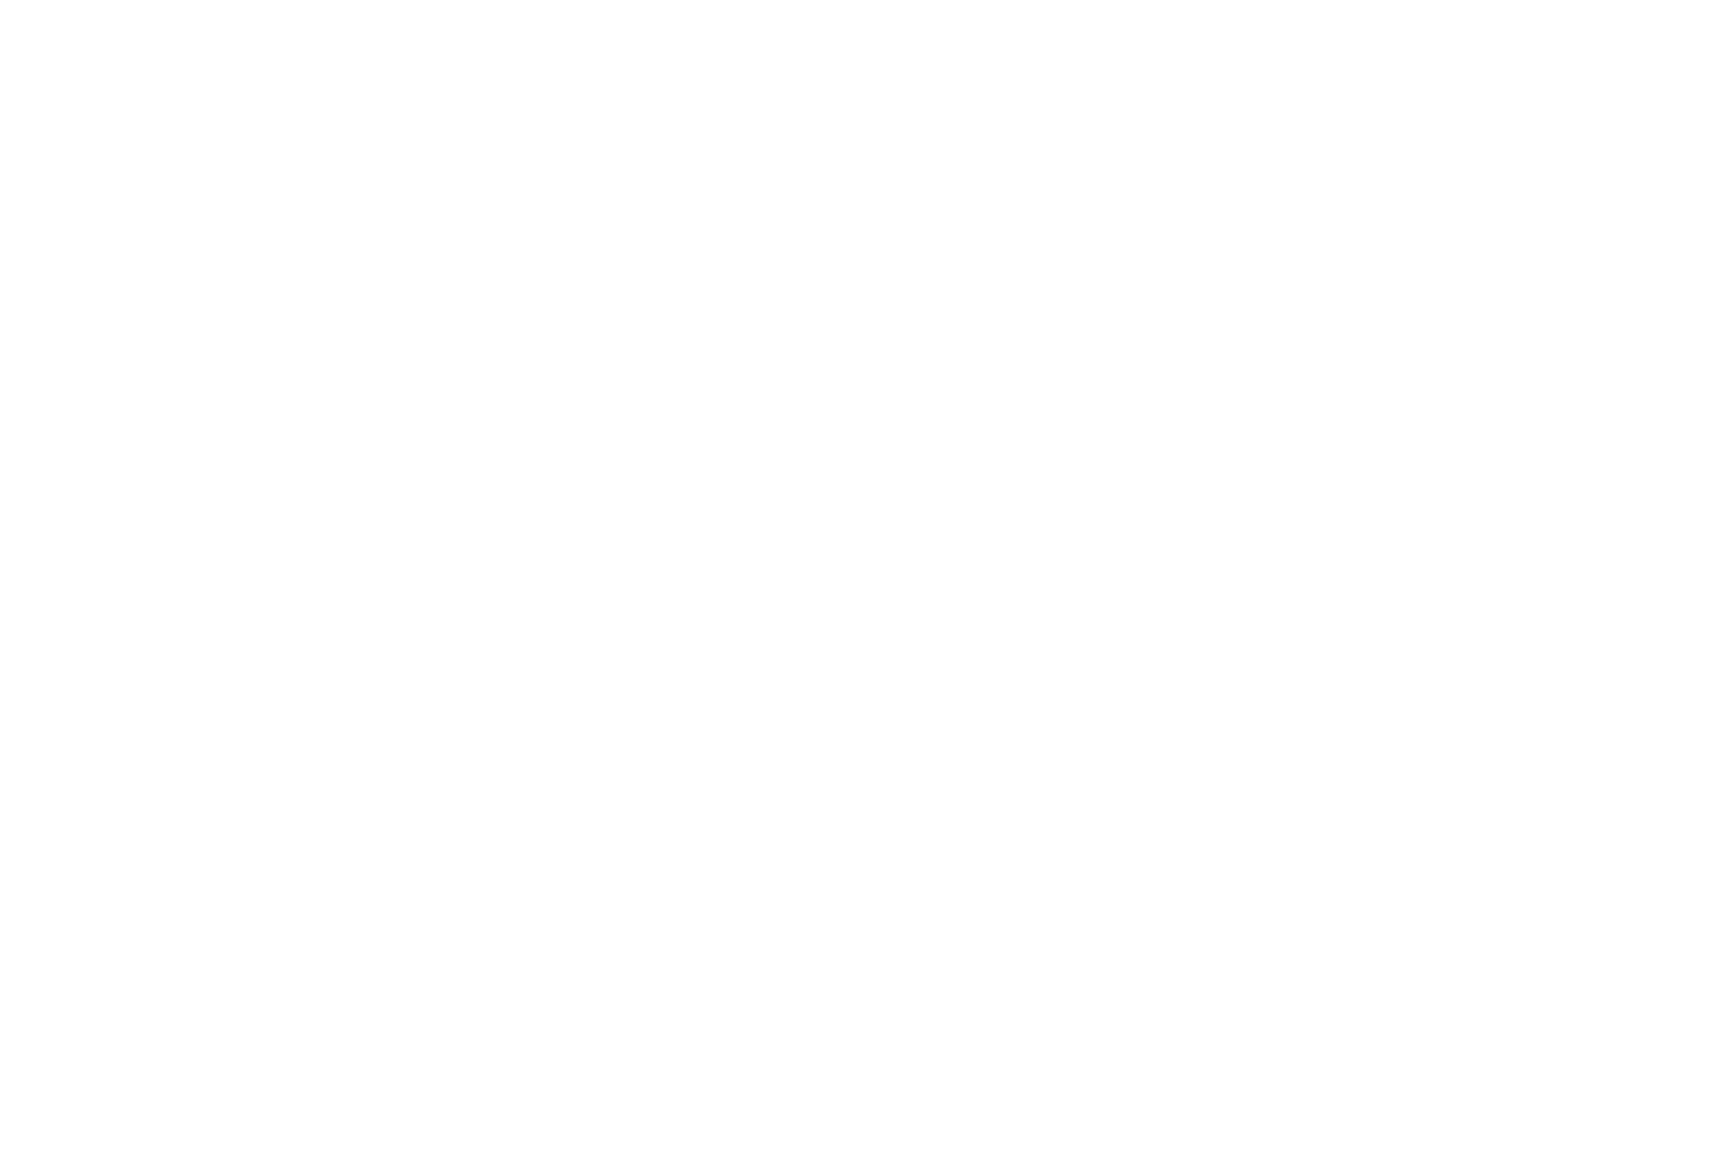 OFFICIAL SELECTION - Indie Short Fest - 2020